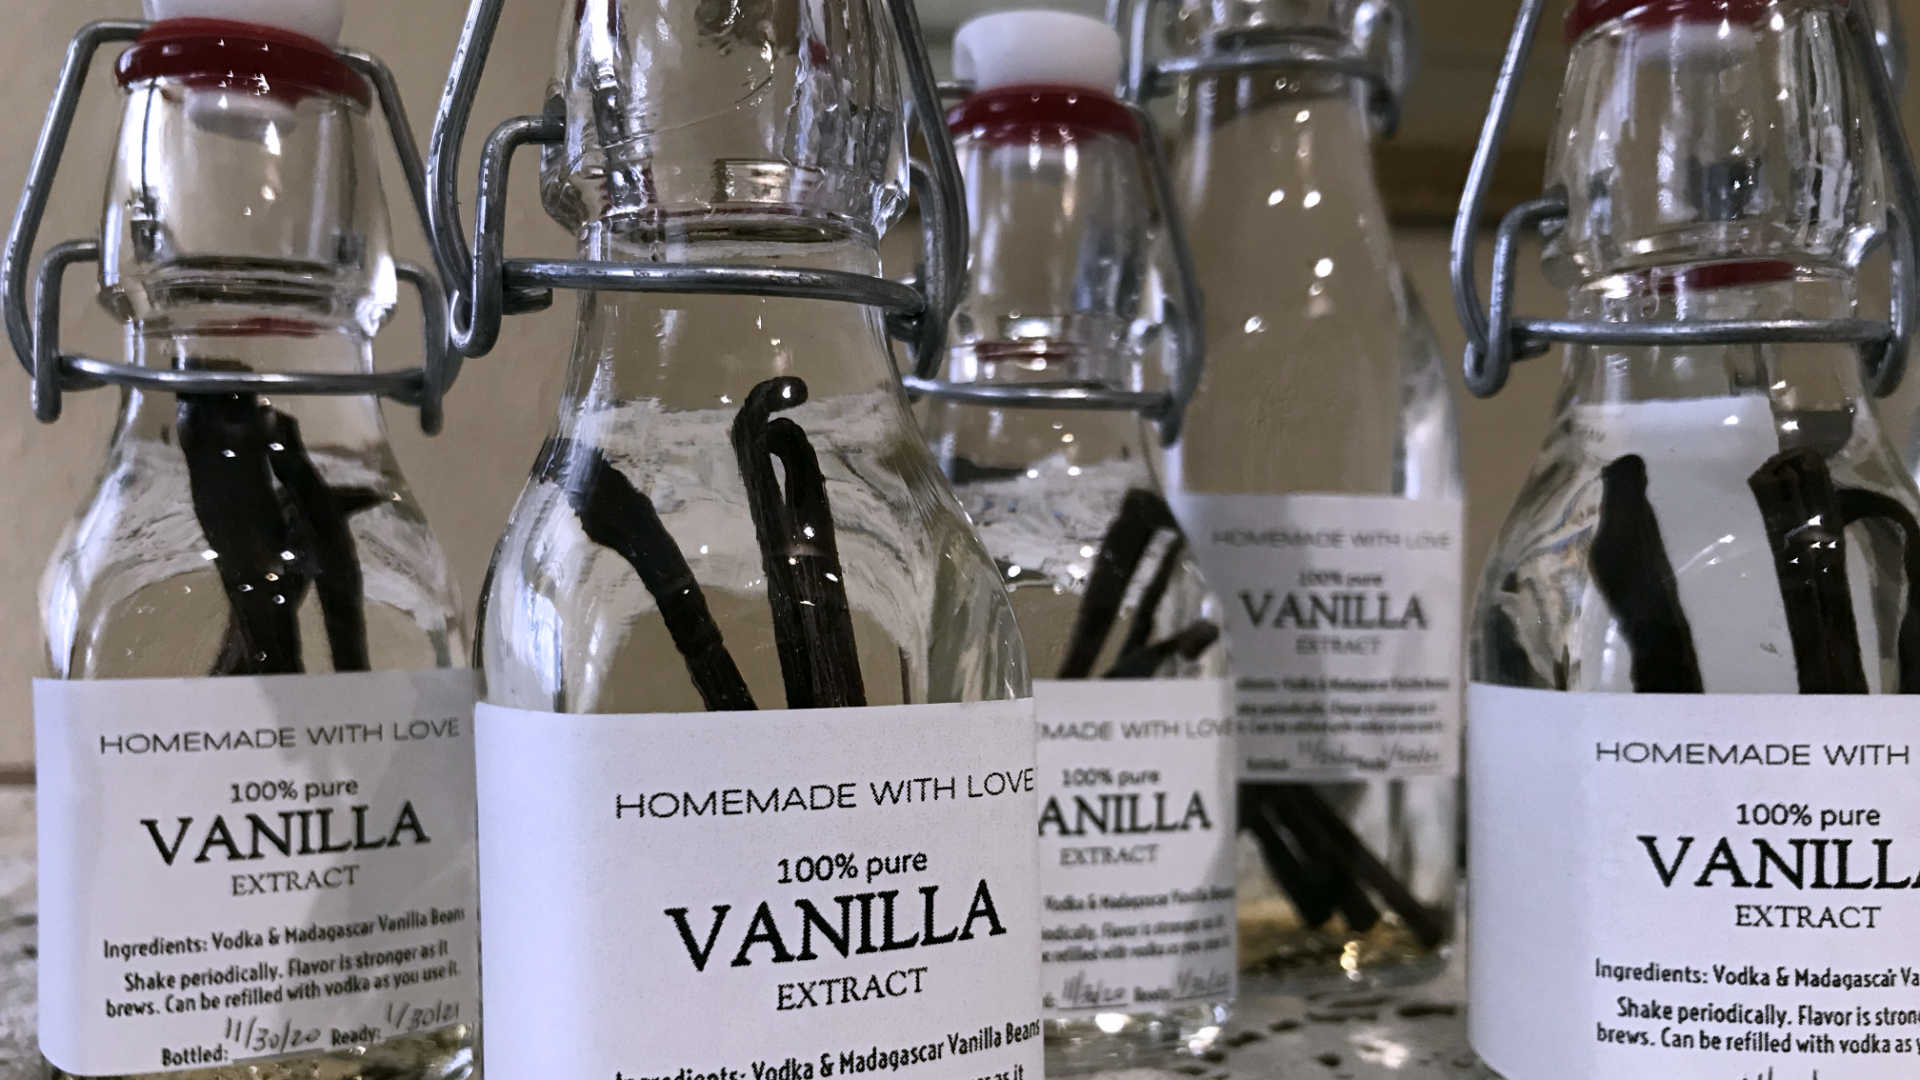 Jenni's homemade vanilla extract, complete with DIY labels and glass bottles! Neat gift idea.